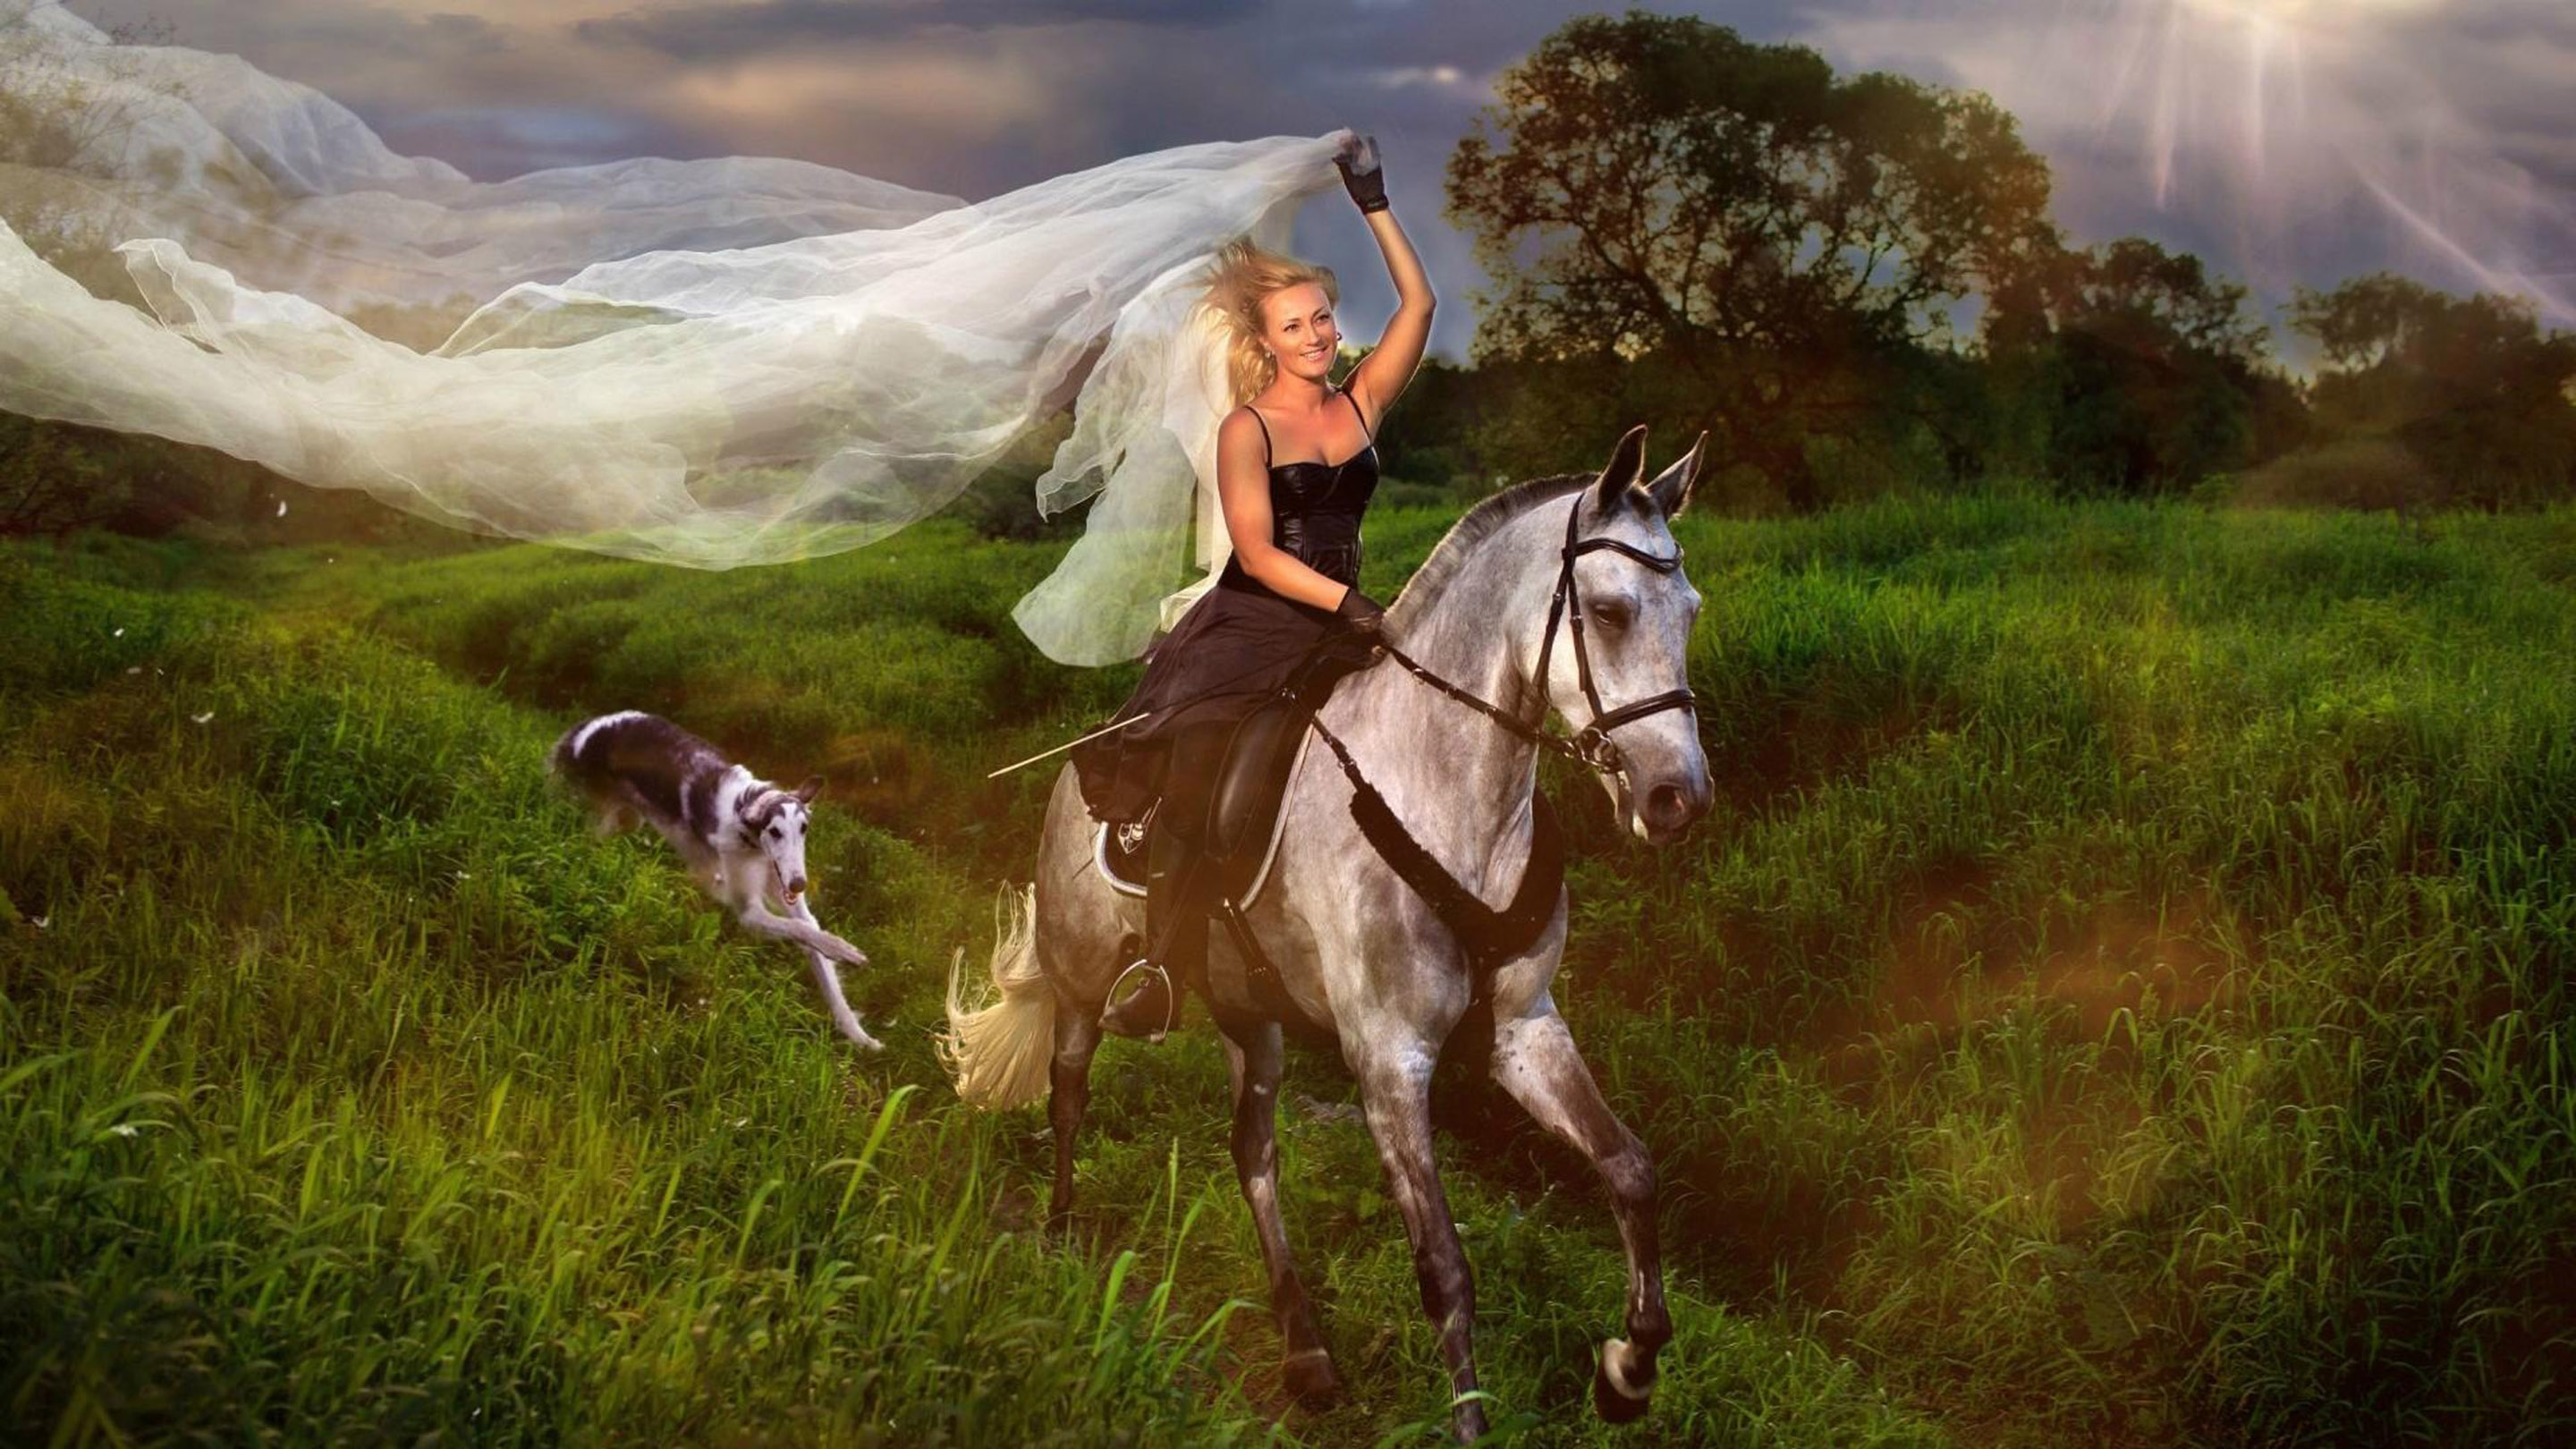 American Beautiful Girl Hd Wallpaper Blue Girl Jockey And White Horse Hair Veil Field With